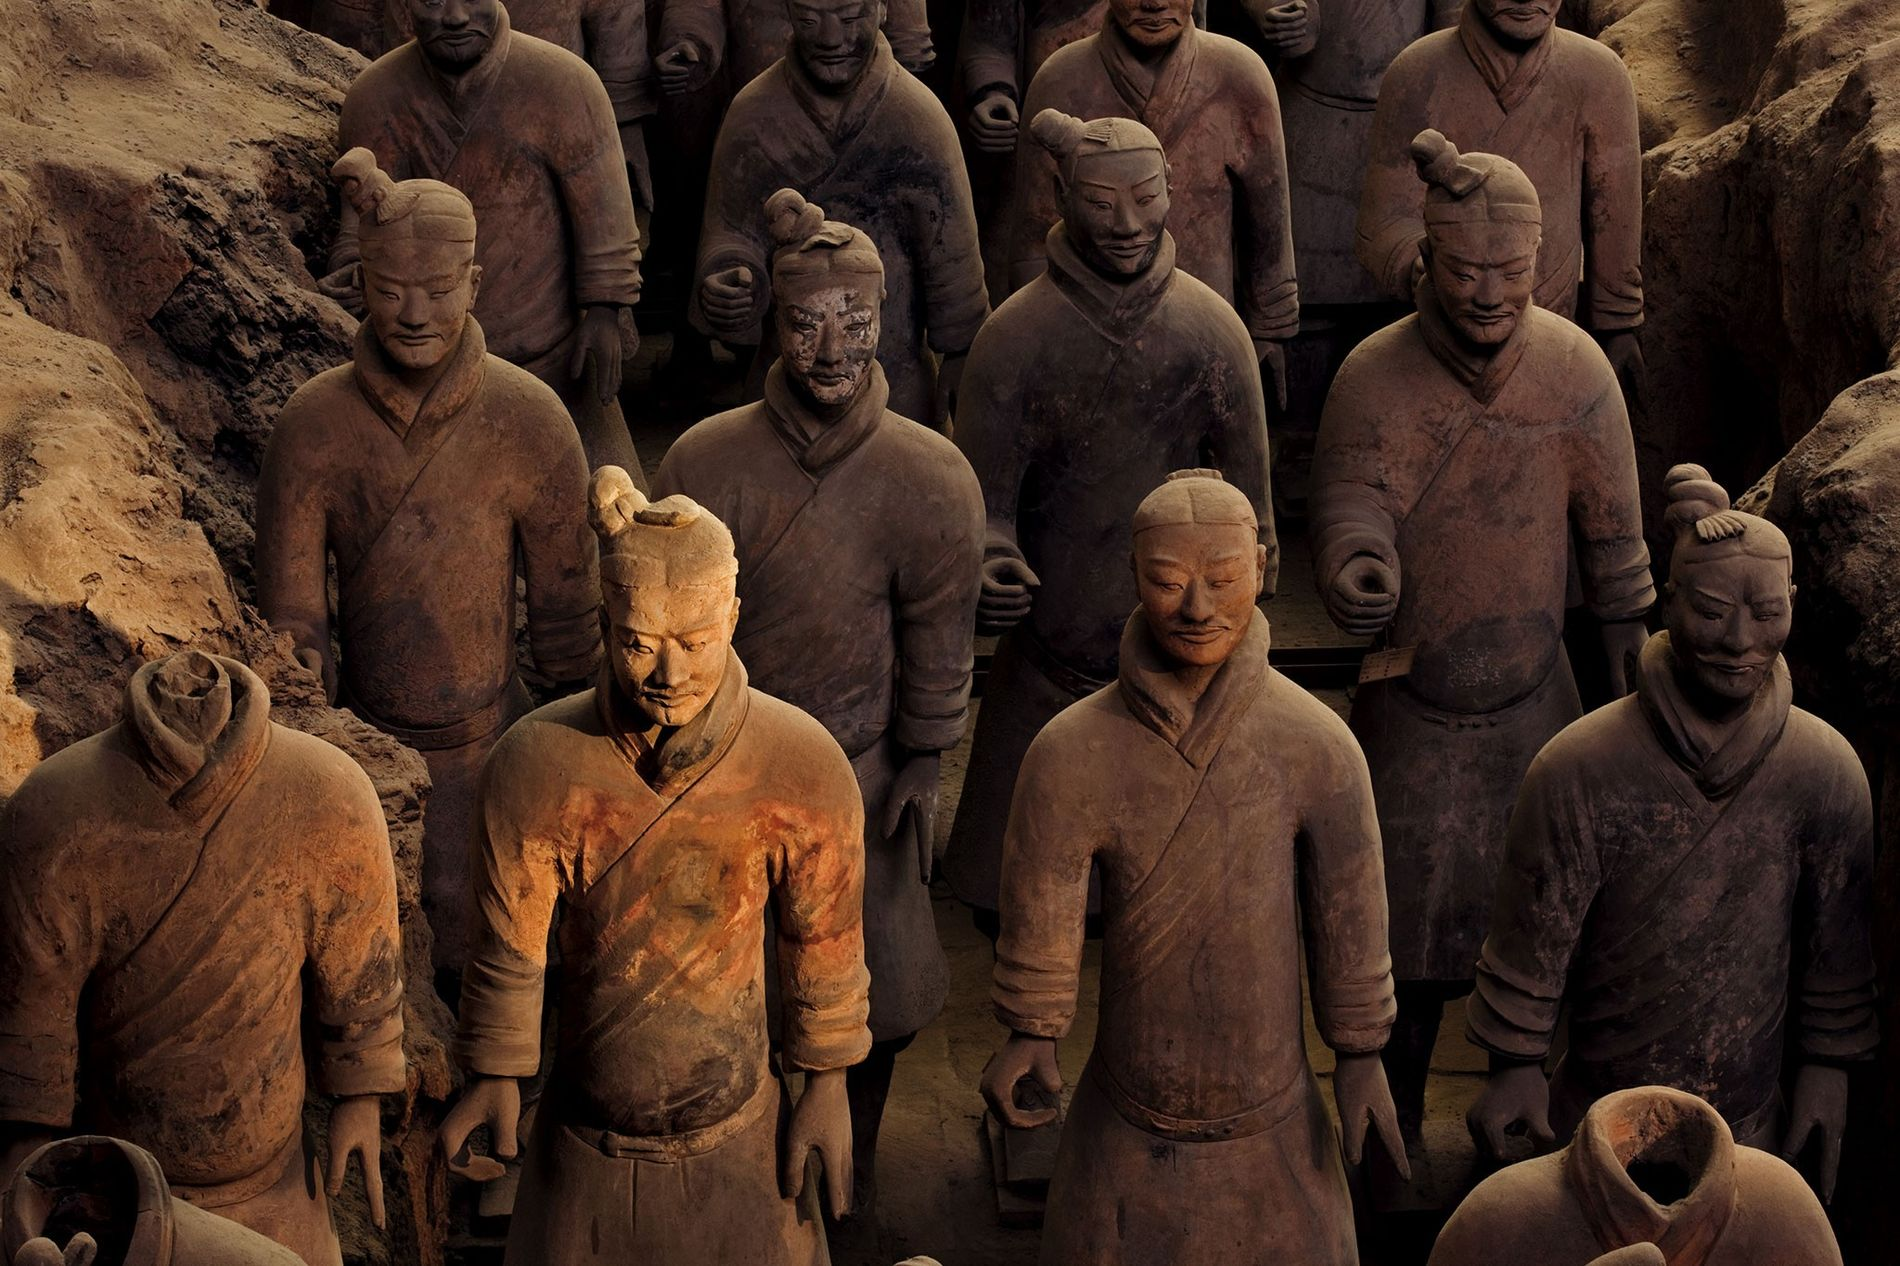 The terracotta army was created to serve China's first emperor in the afterlife.